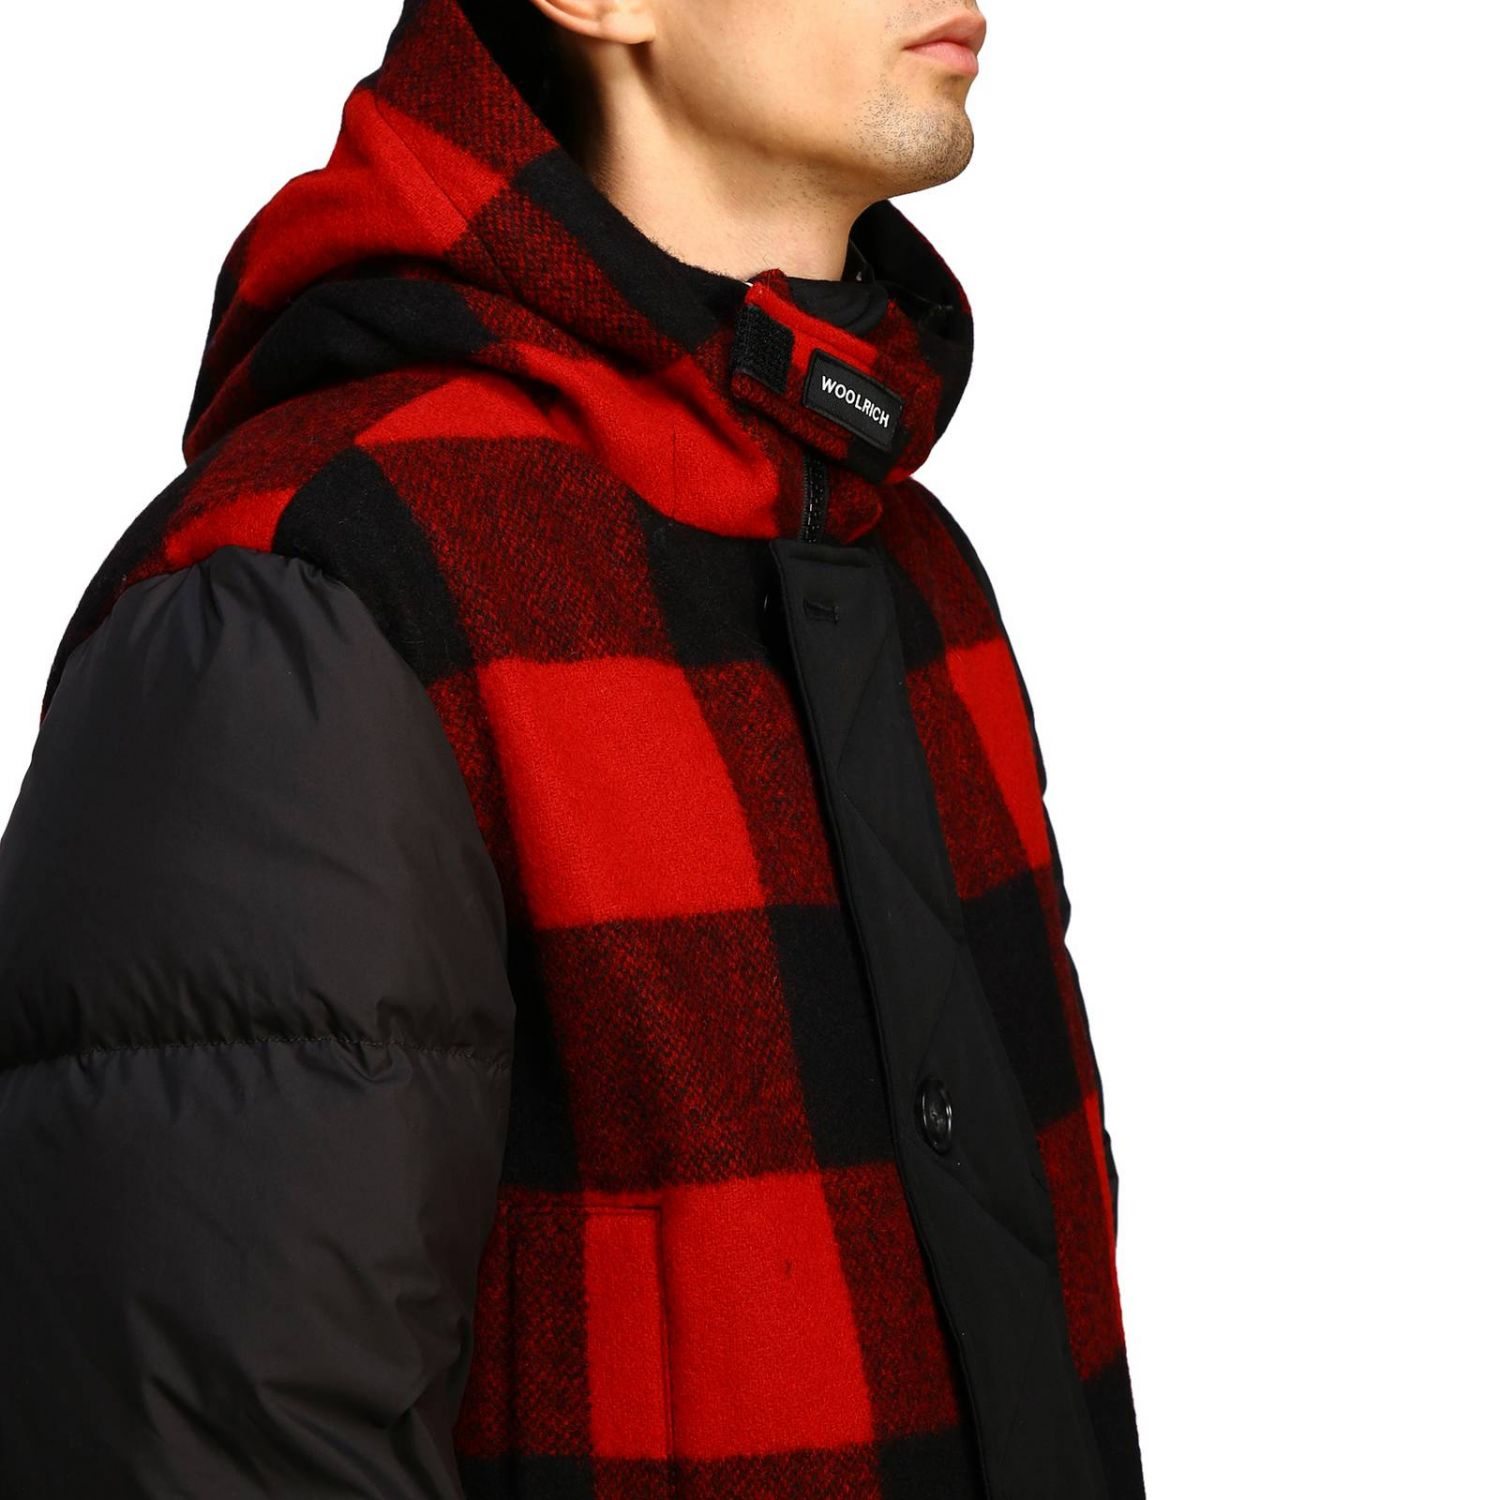 Giacca Woolrich: Giacca uomo Woolrich nero 5